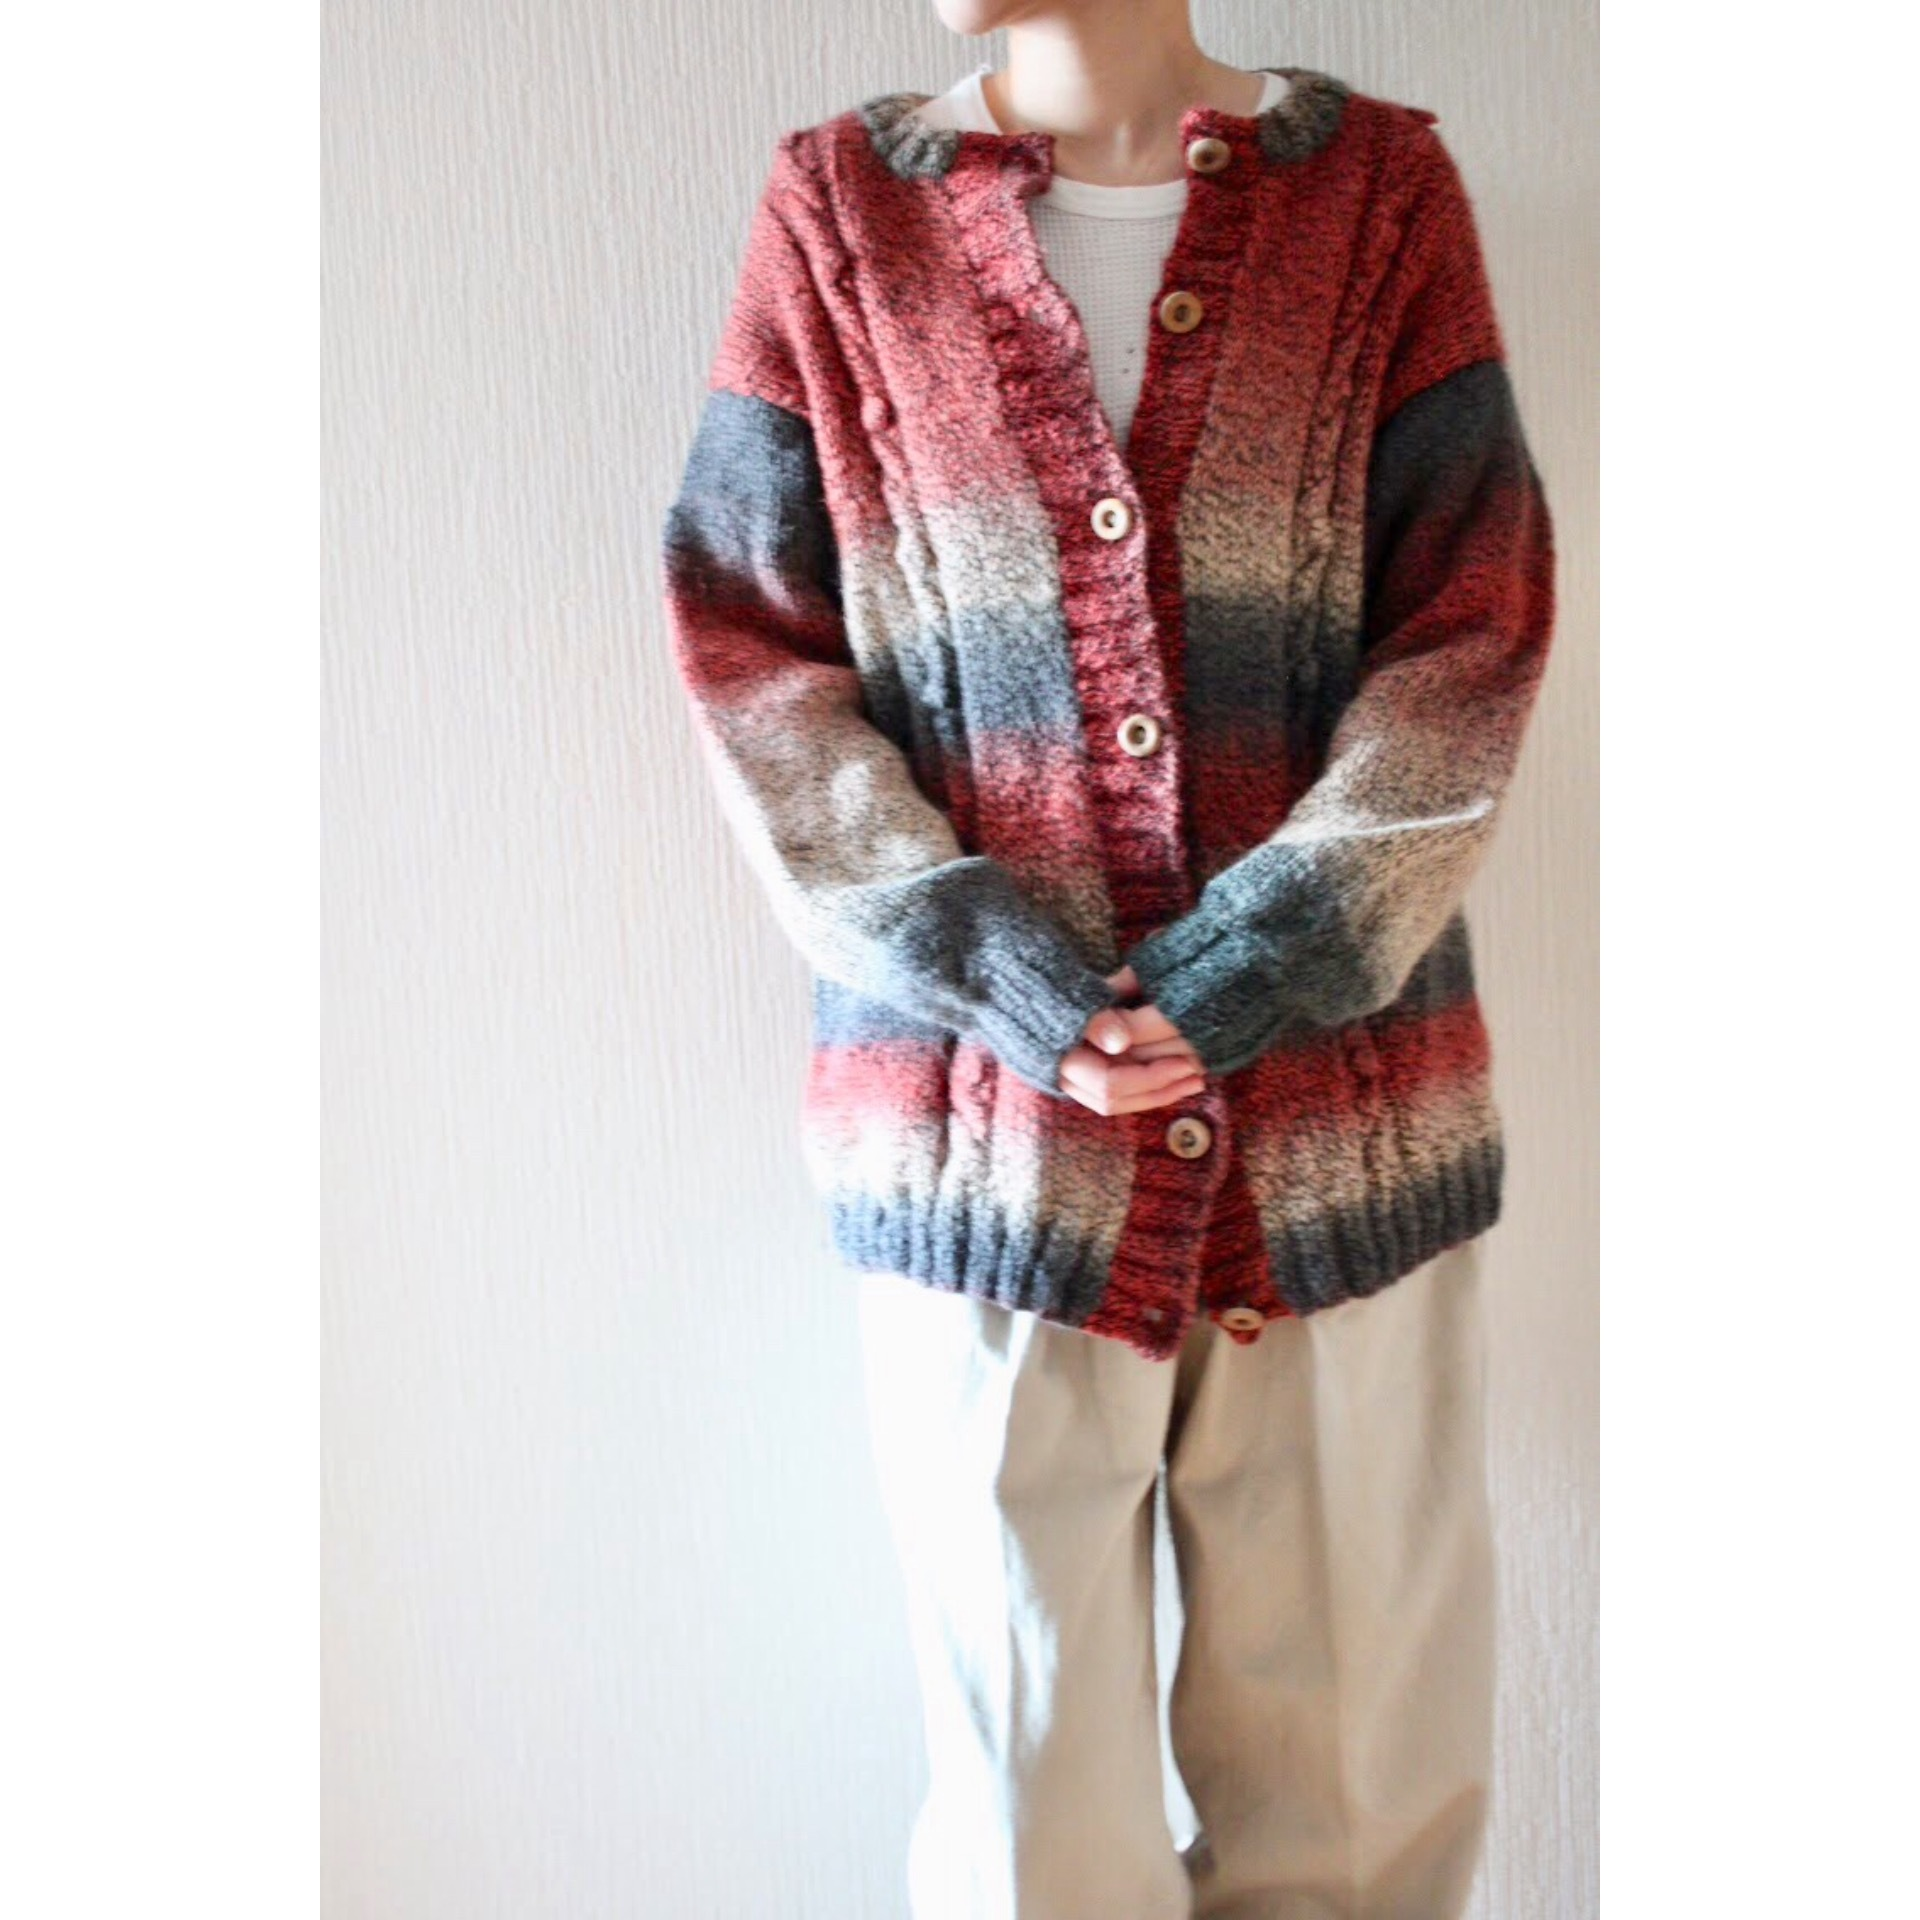 Vintage wool cotton knit cardigan